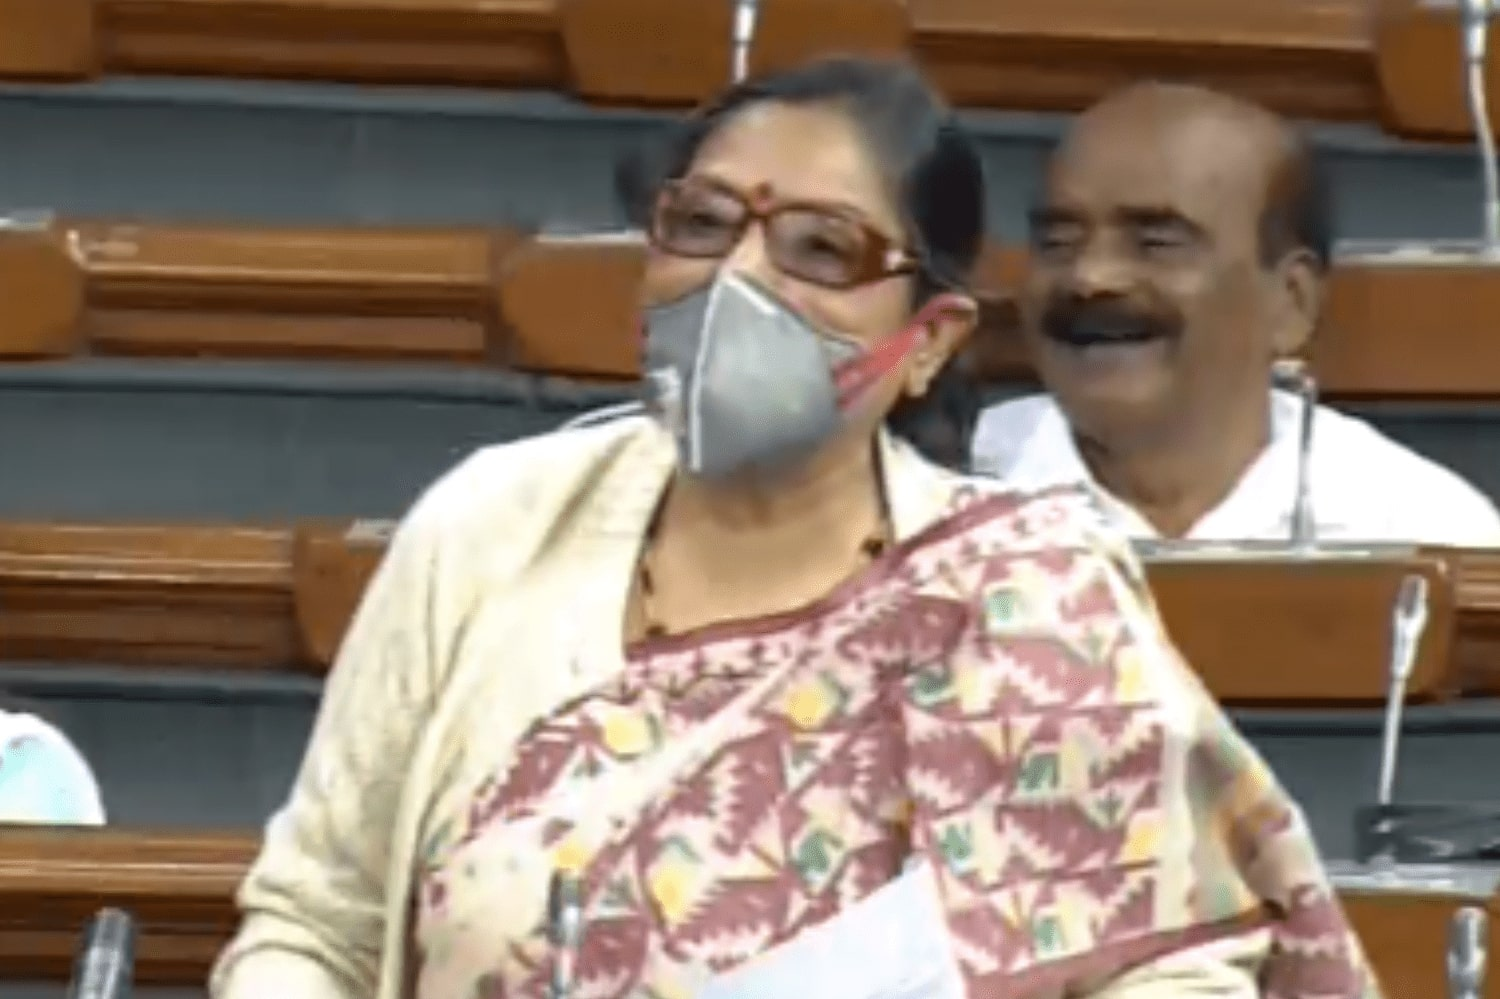 TMC MP arrives in Parliament wearing mask to protest against air pollution